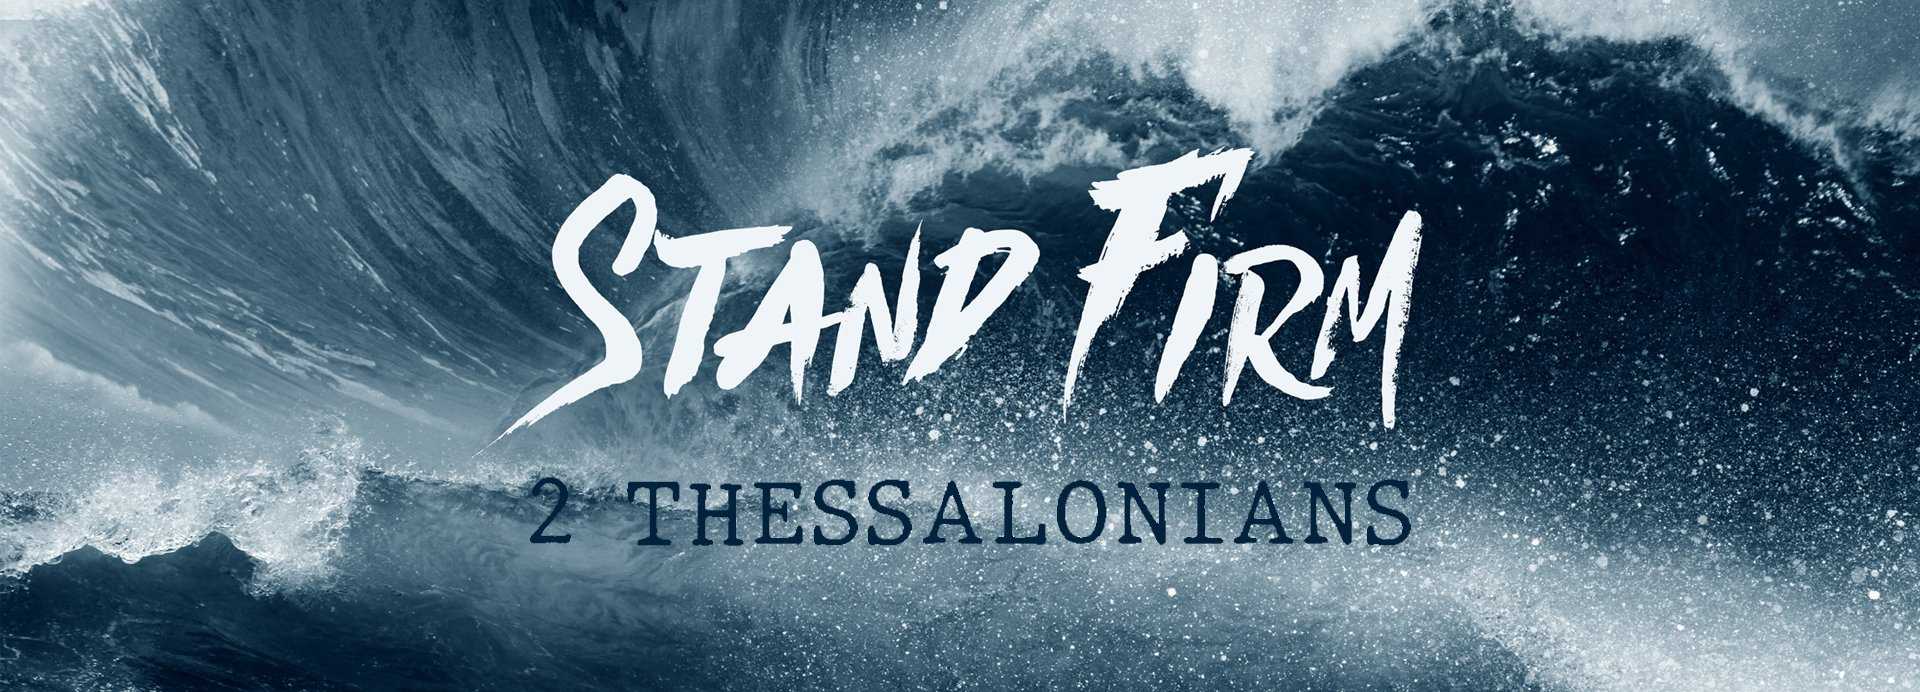 Stand Firm by Keeping the Faith and Remembering the Word of the Lord